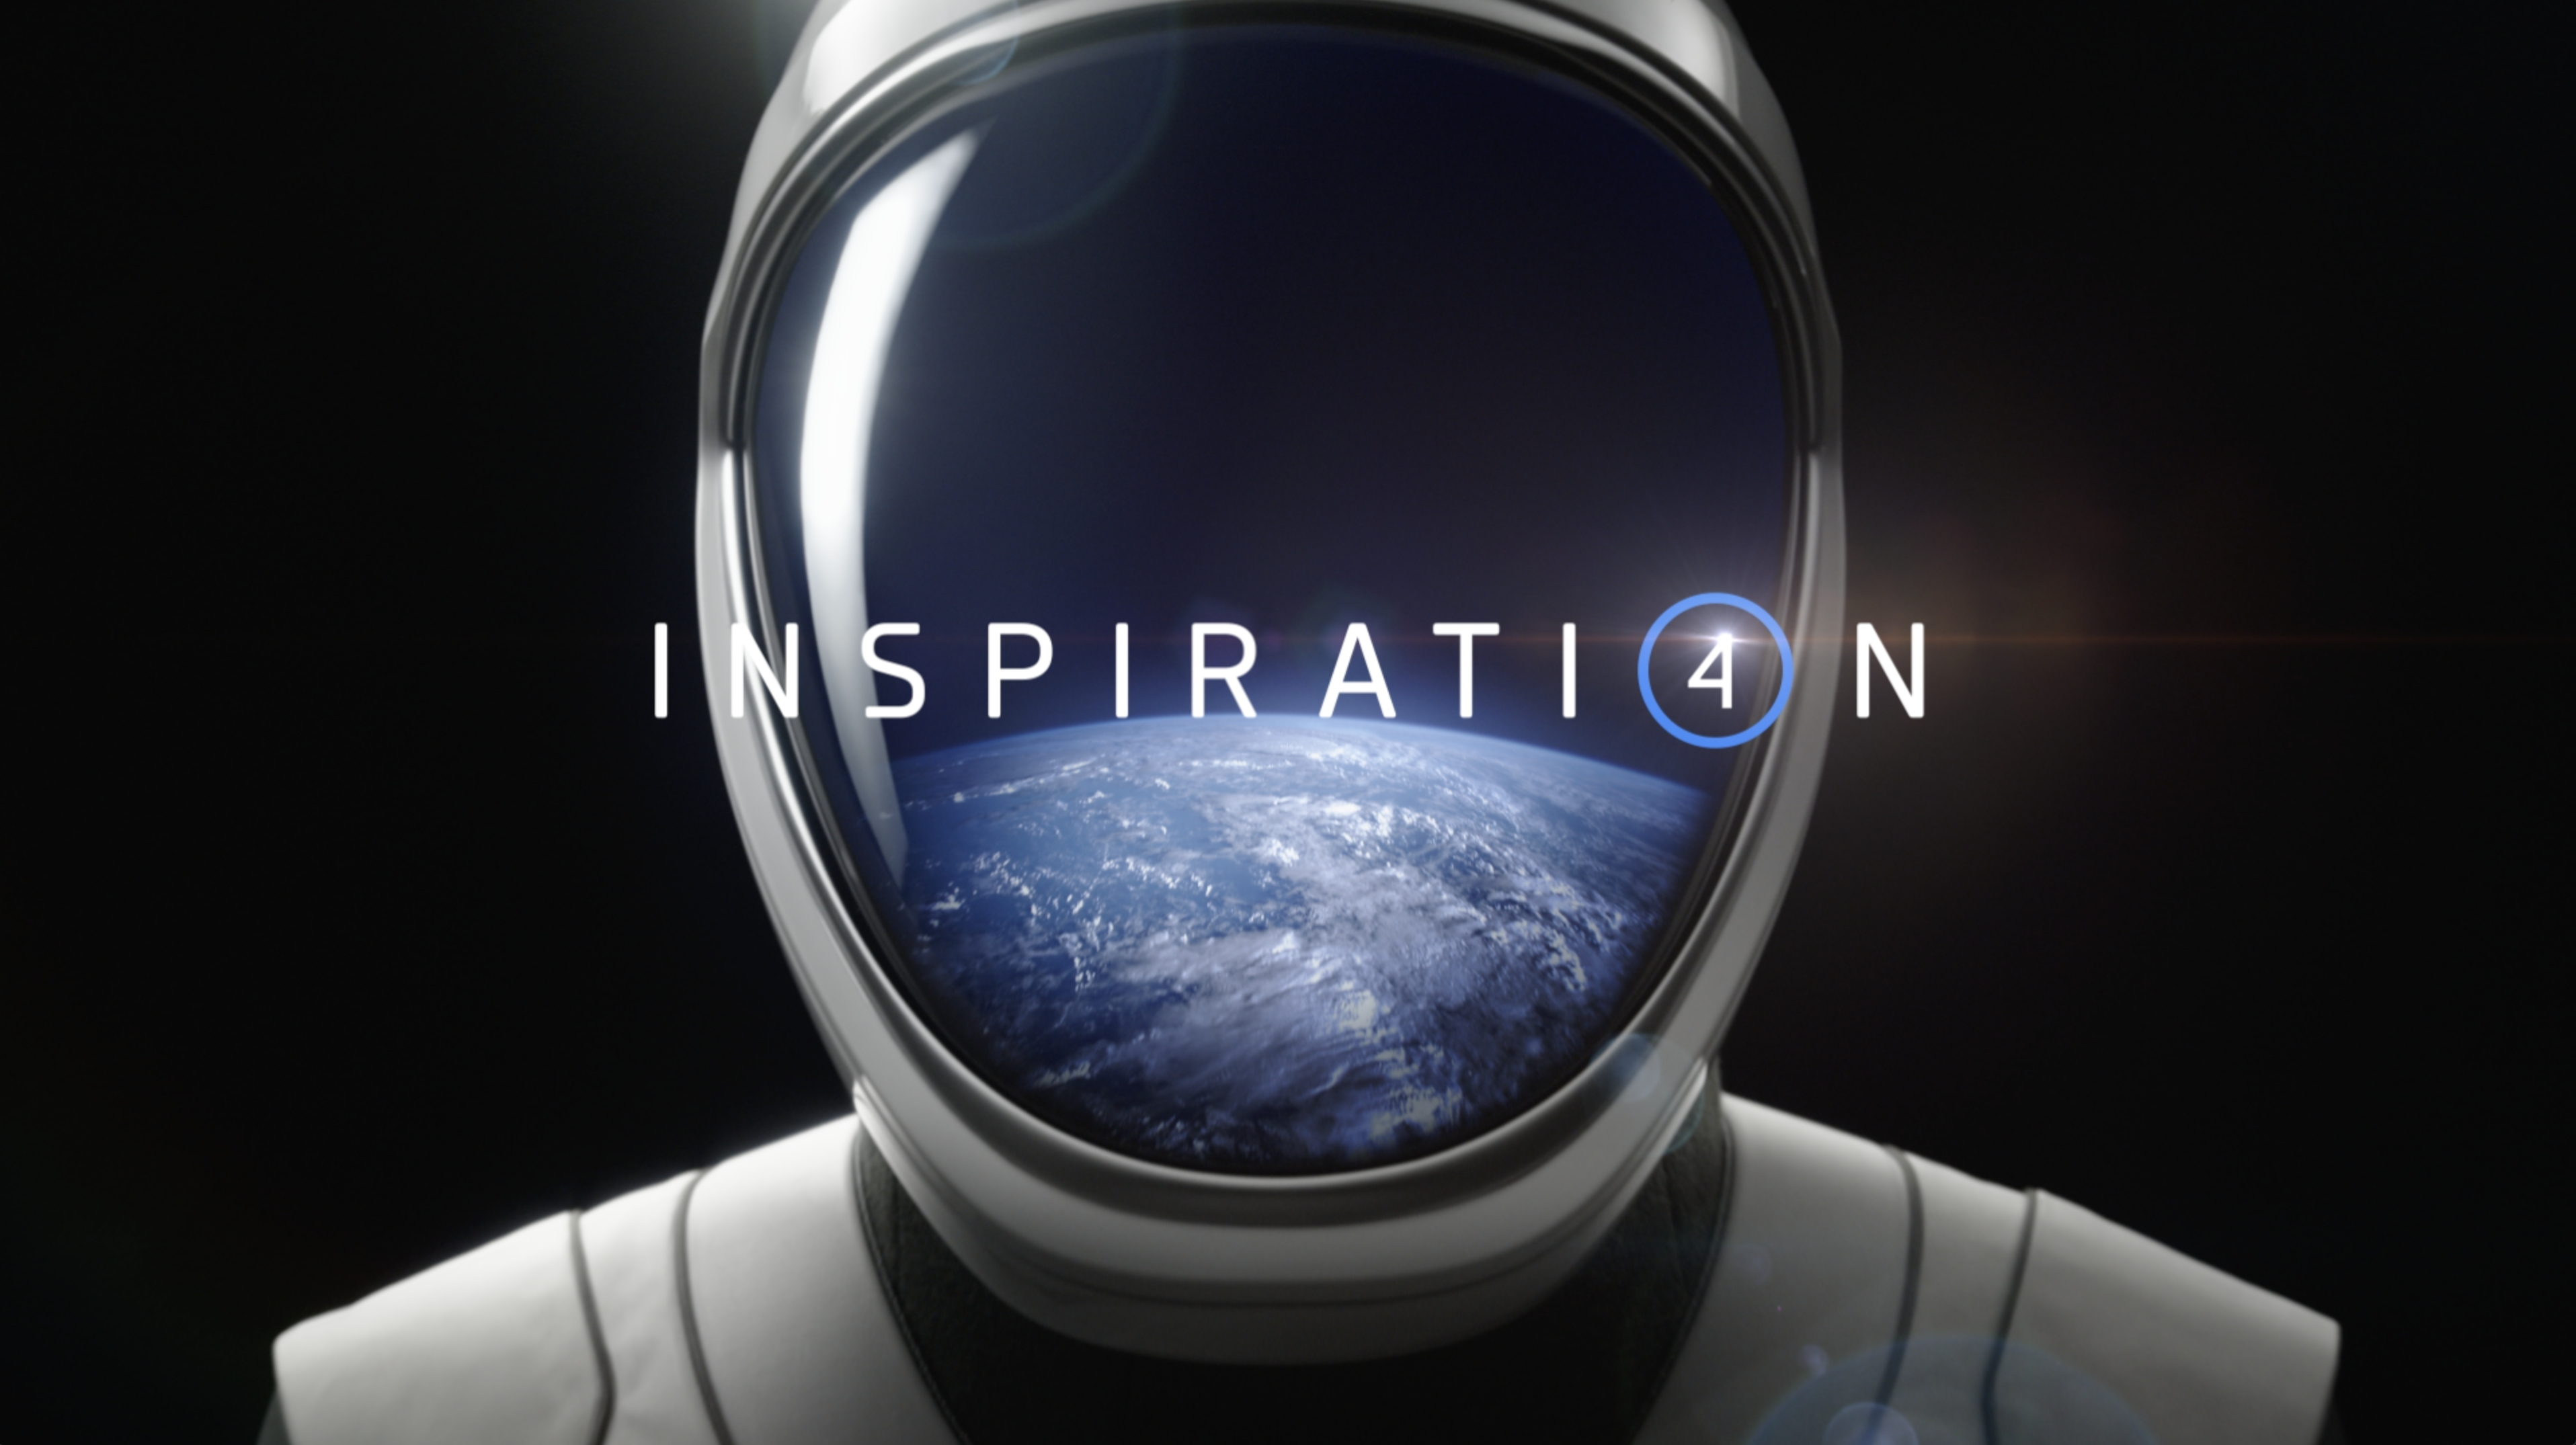 Super Bowl Ad for Inspiration20 Invites Viewers to Join World's ...